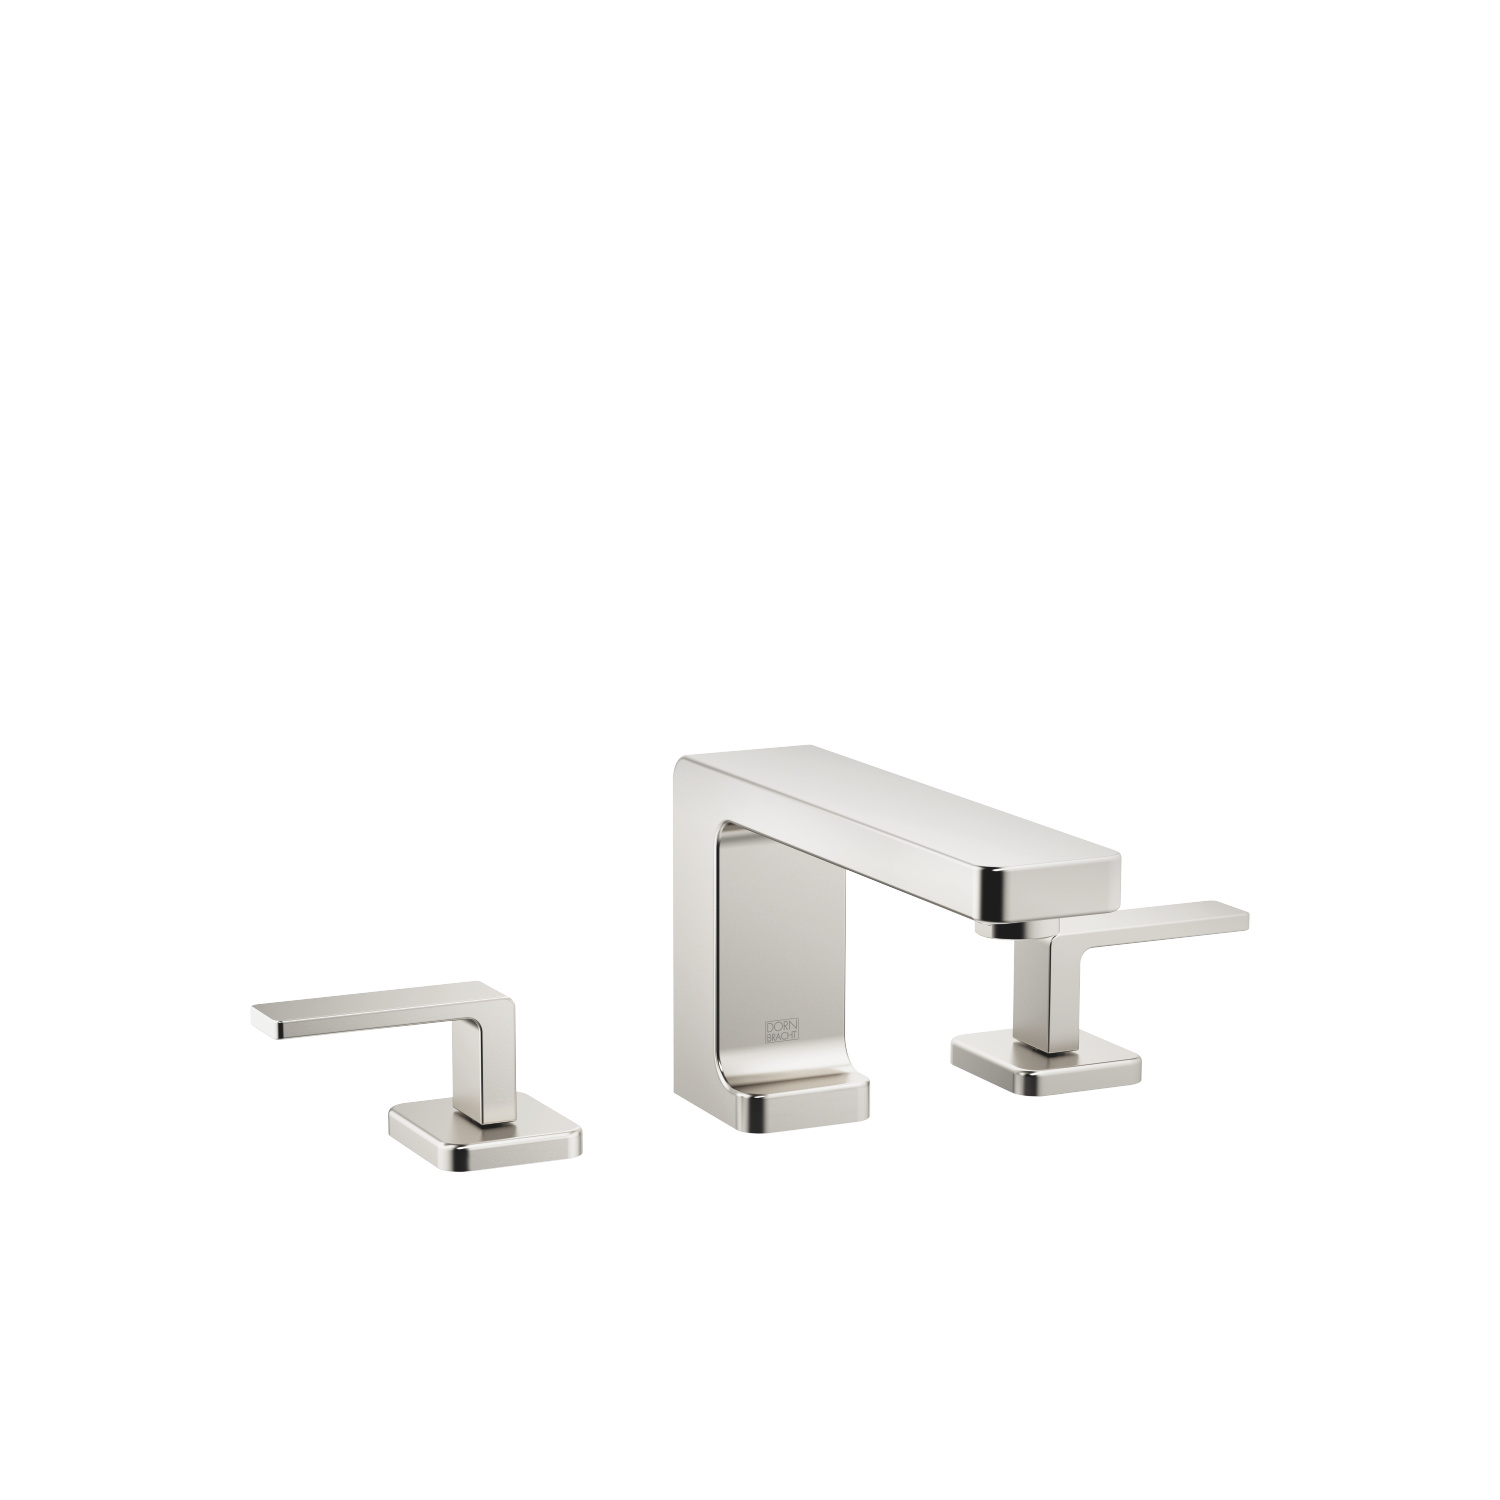 Three-hole basin mixer with pop-up waste - platinum matt